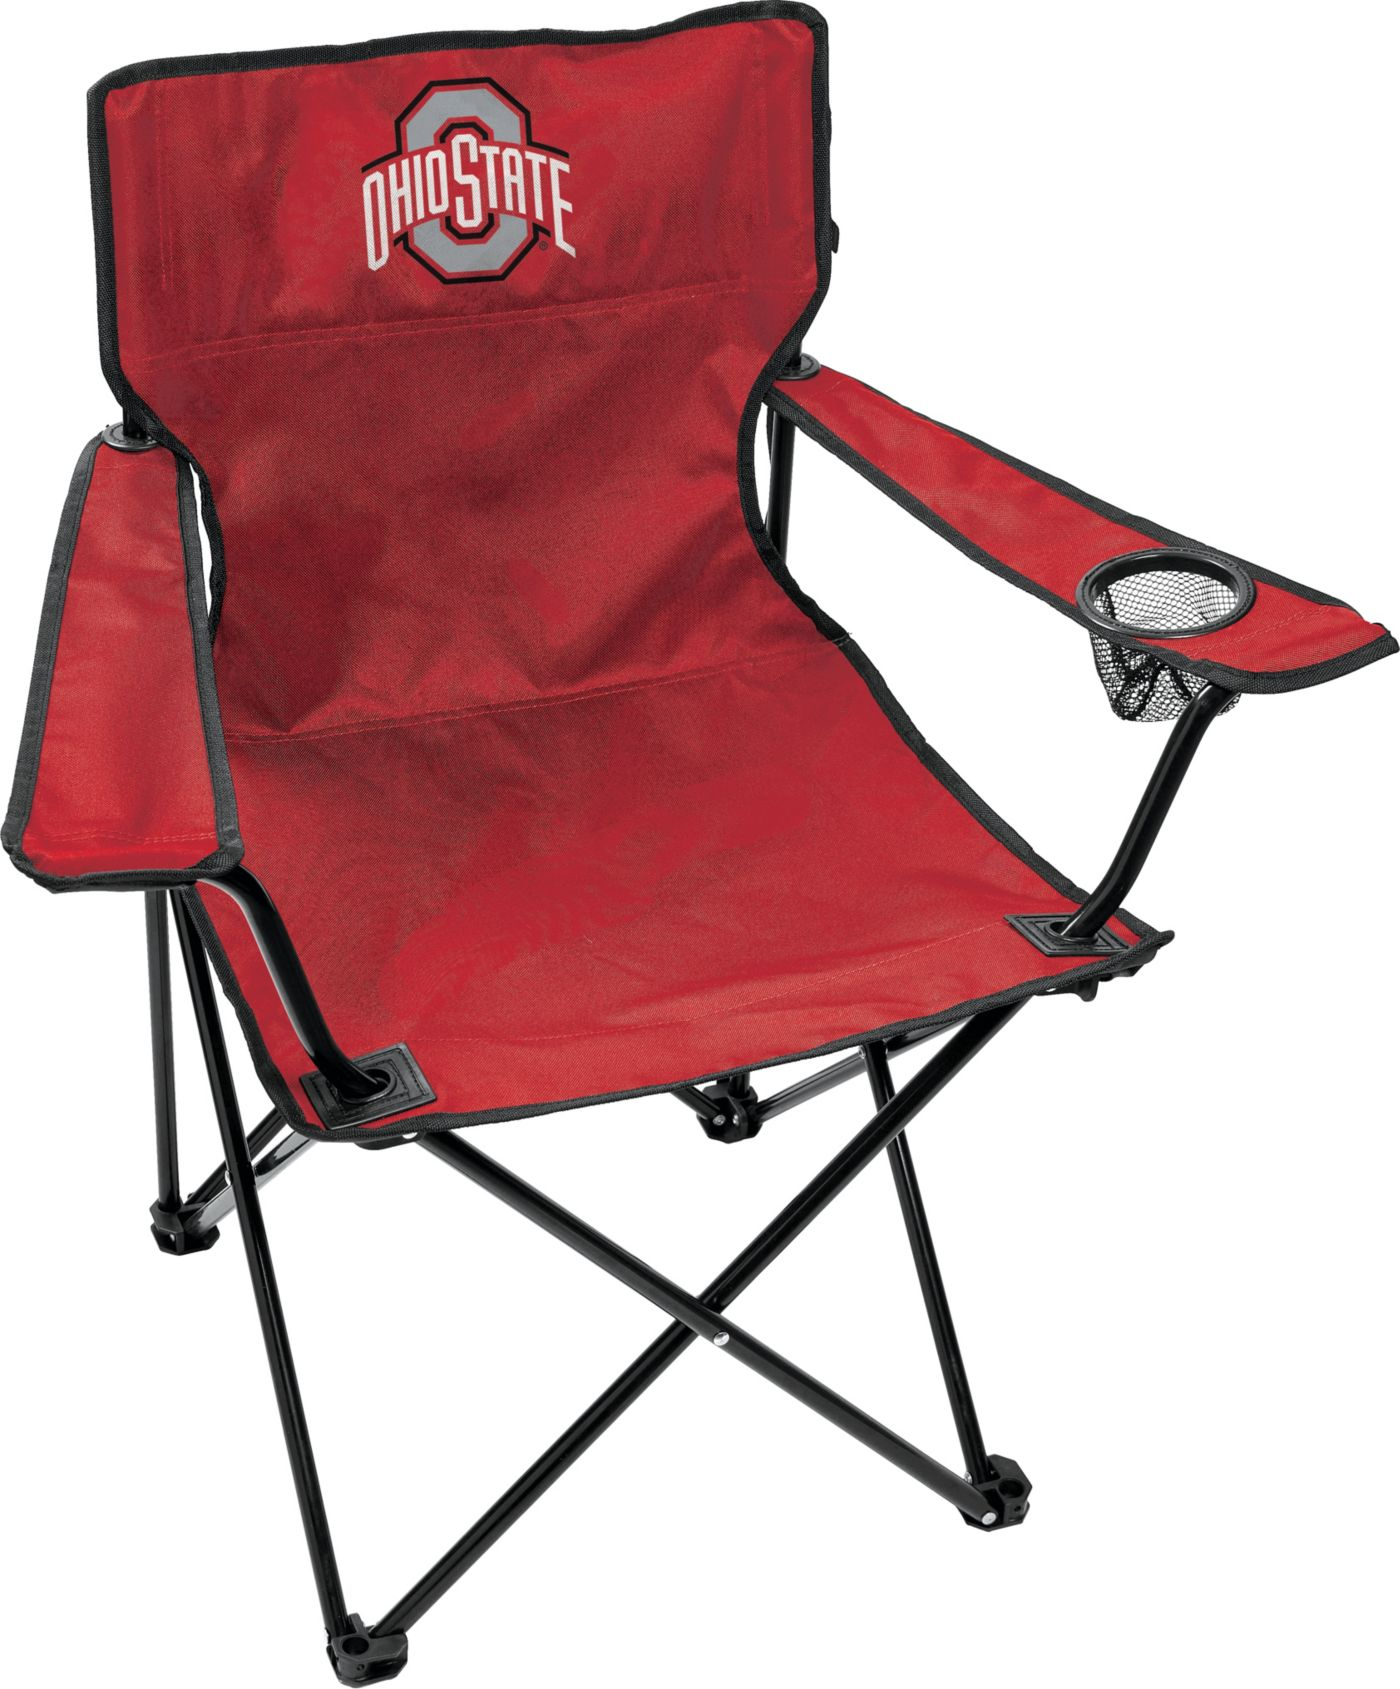 Rawlings Ohio State Buckeyes Game Changer Chair